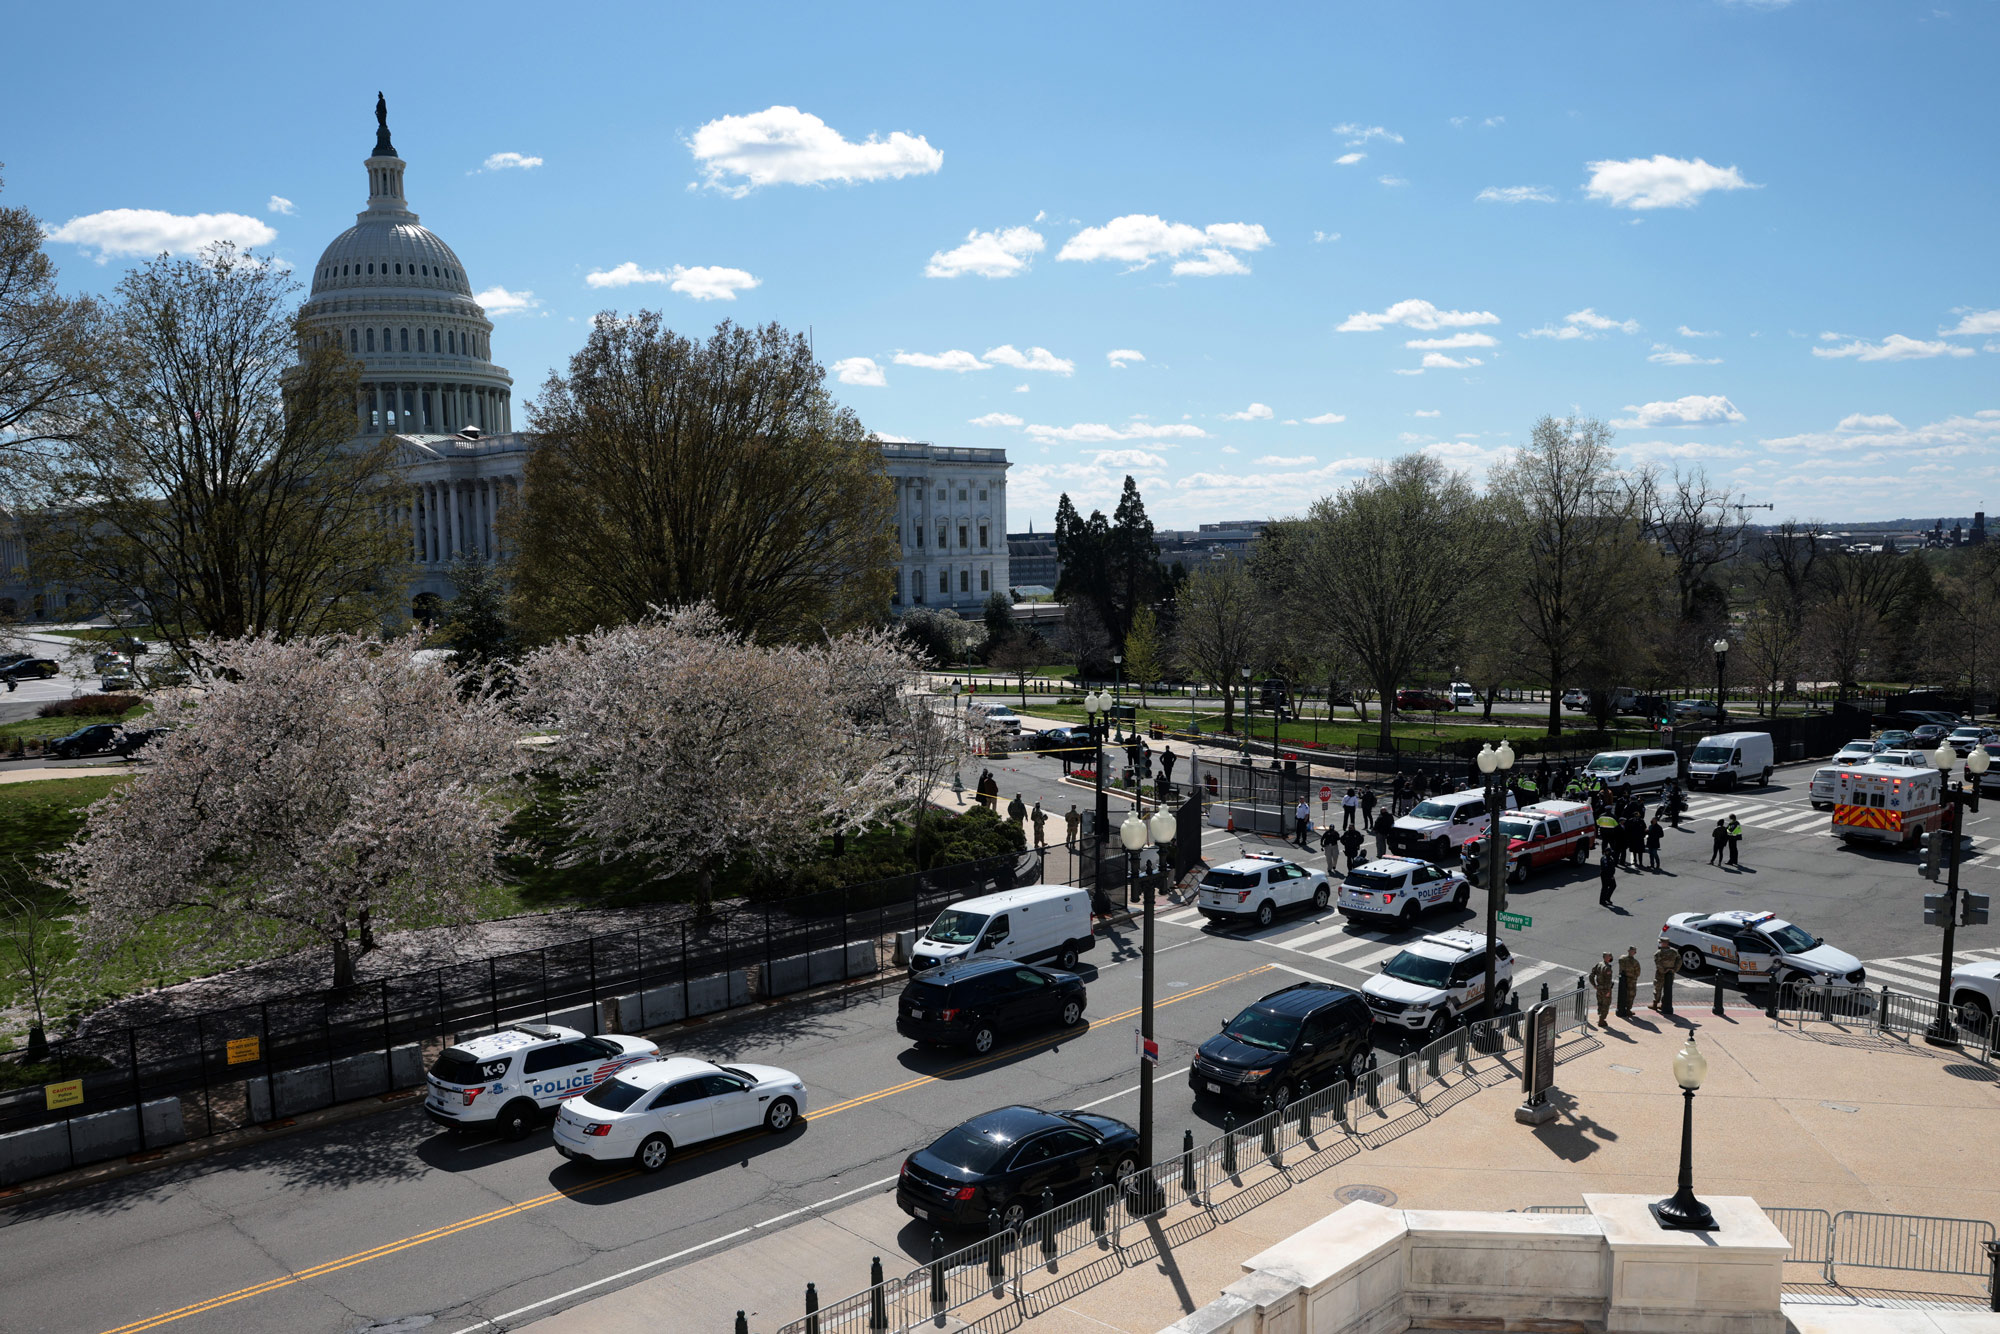 Law enforcement investigate the scene after a vehicle charged a barricade at the U.S. Capitol on April 2 in Washington, DC.